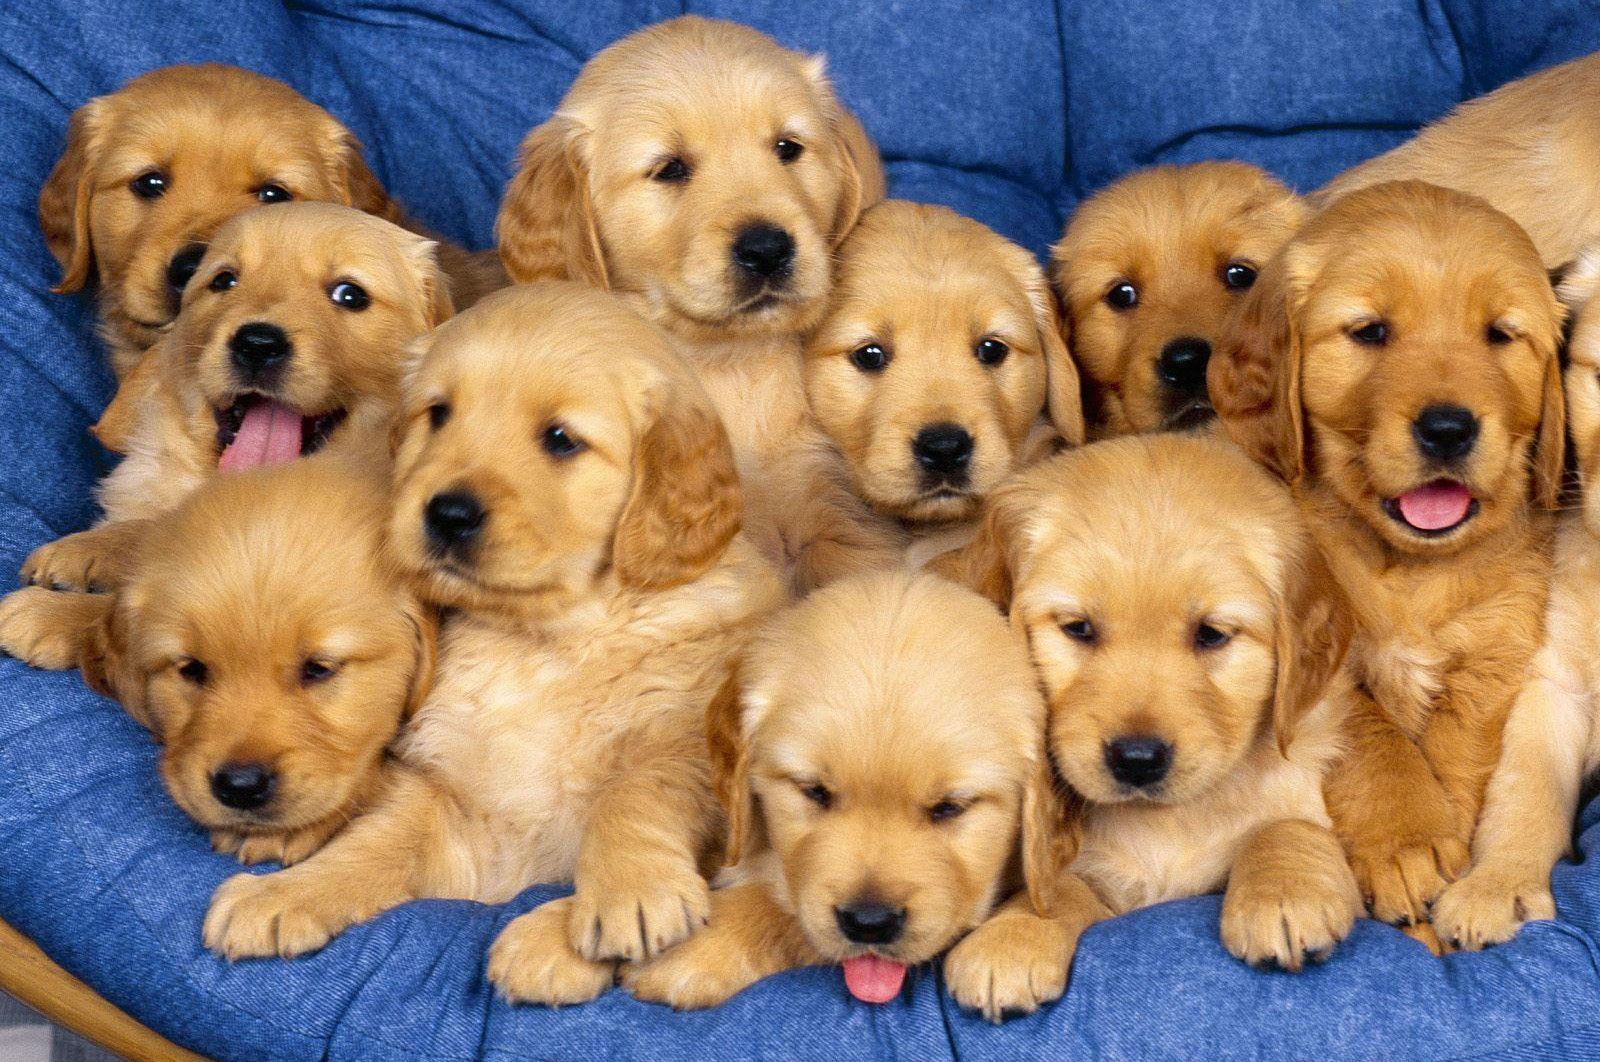 Dog Picture Cute Golden Retriever Puppies HD Wallpapers